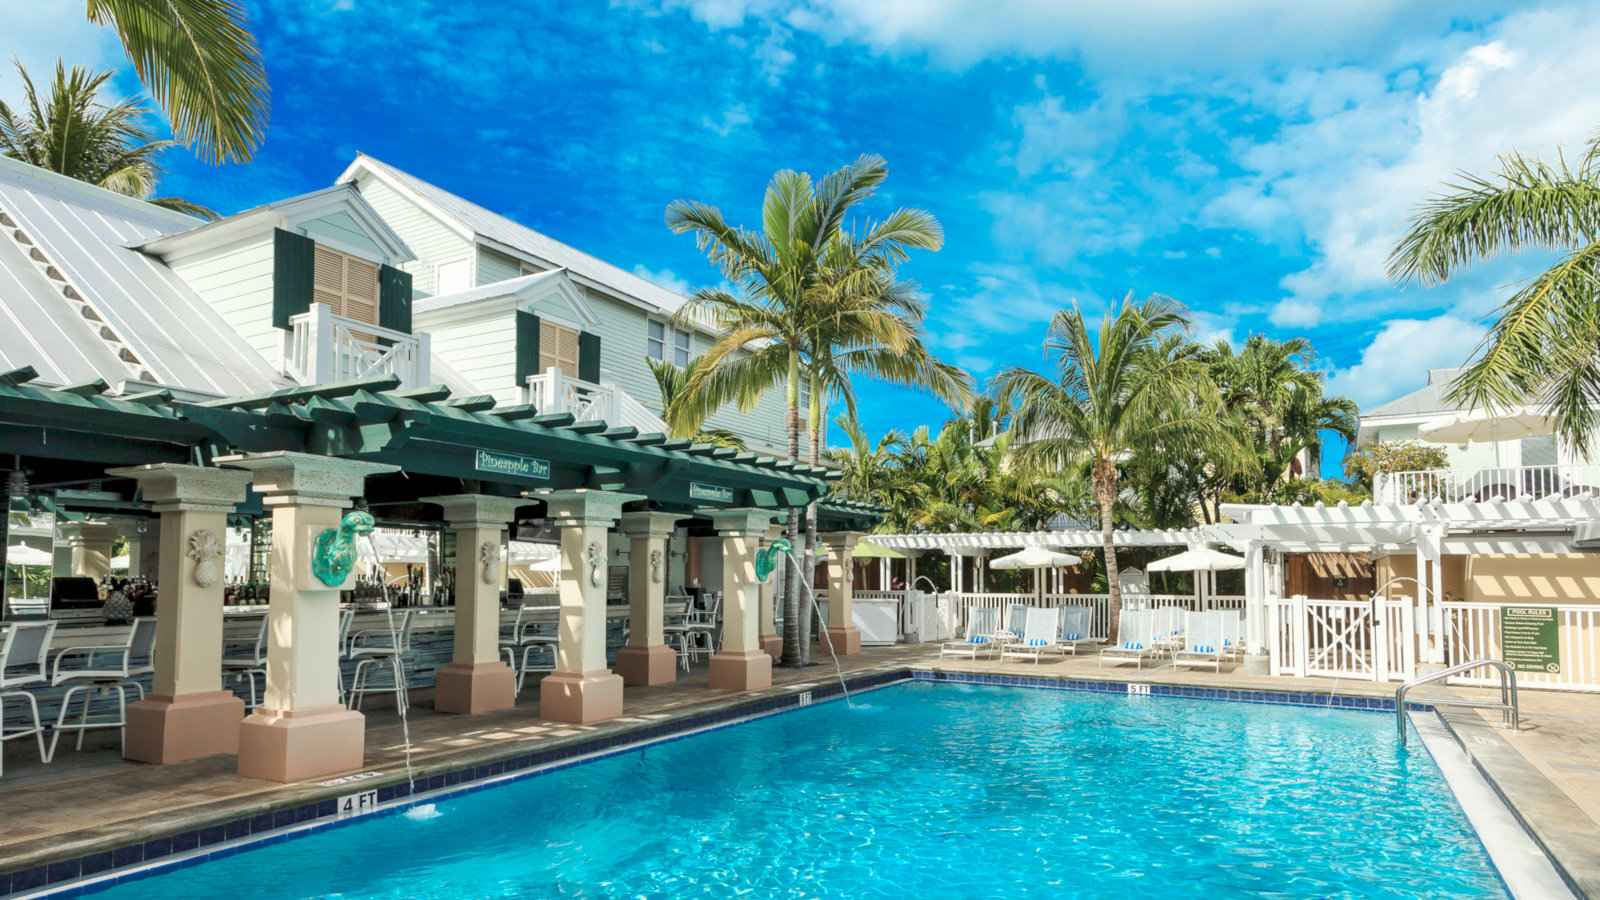 World's top gay resort, island house, is right here in key west